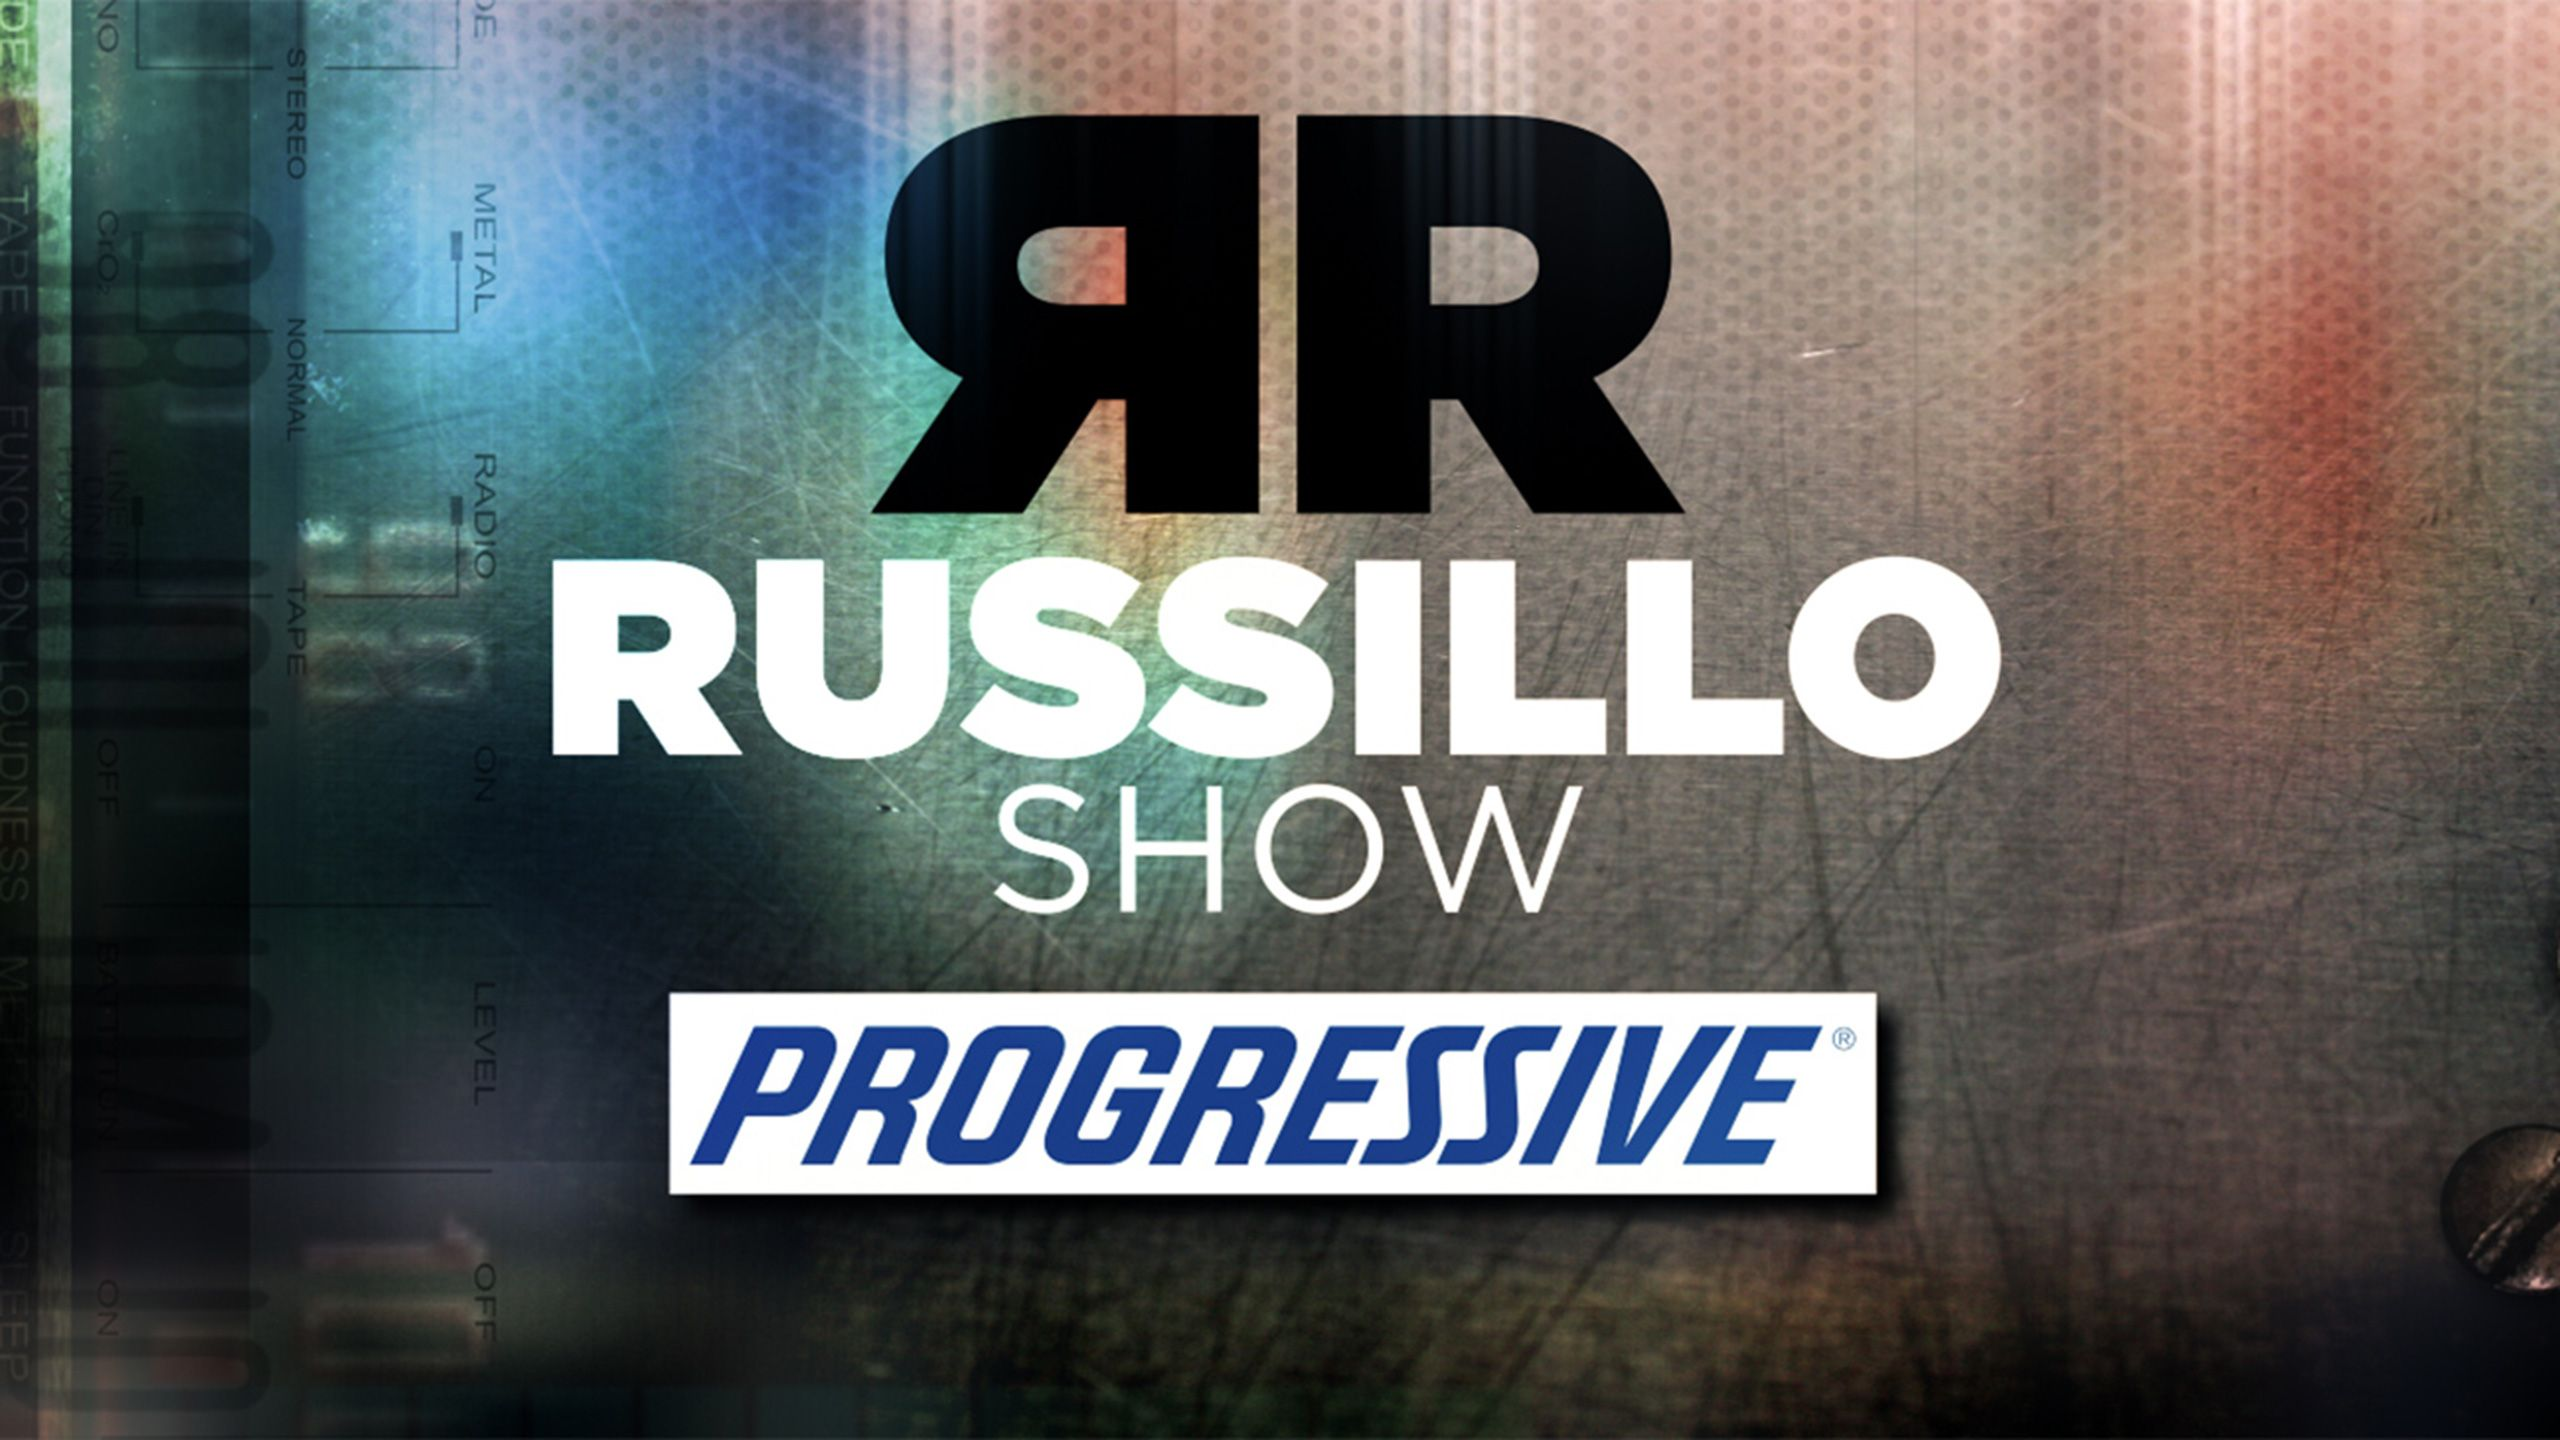 The Ryen Russillo Show Presented by Progressive